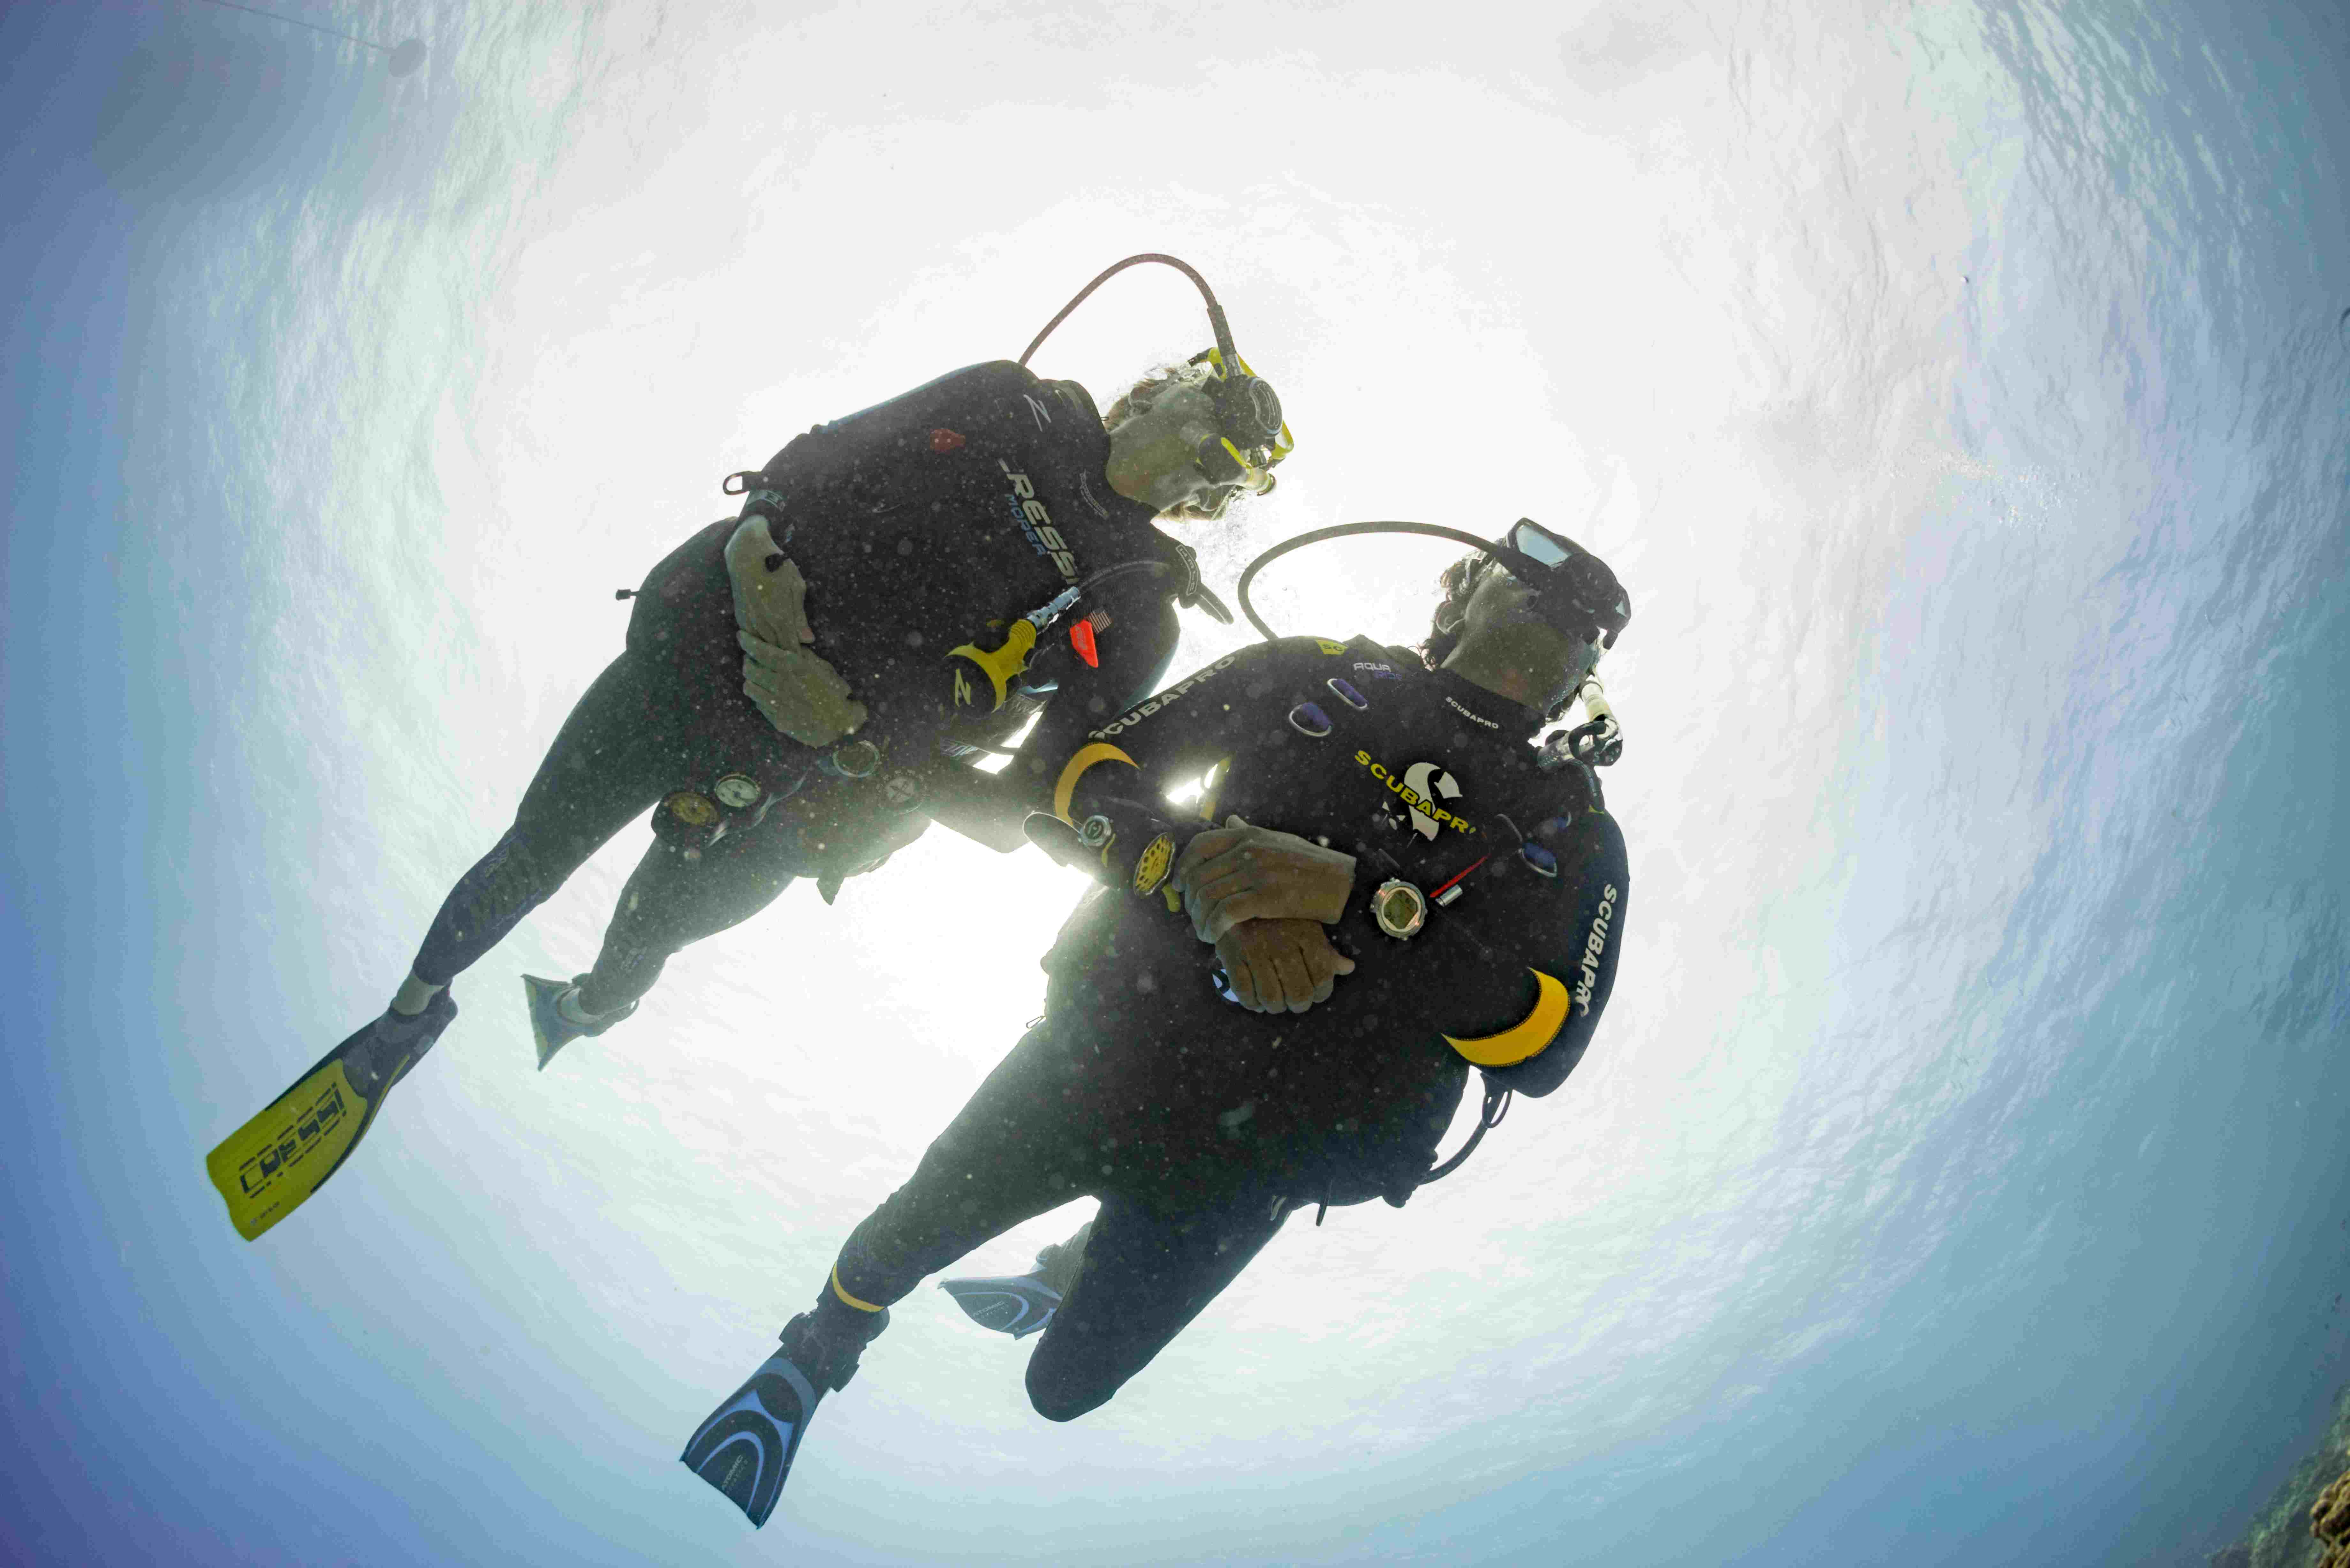 lentic_diving_advanced_open_water_diver